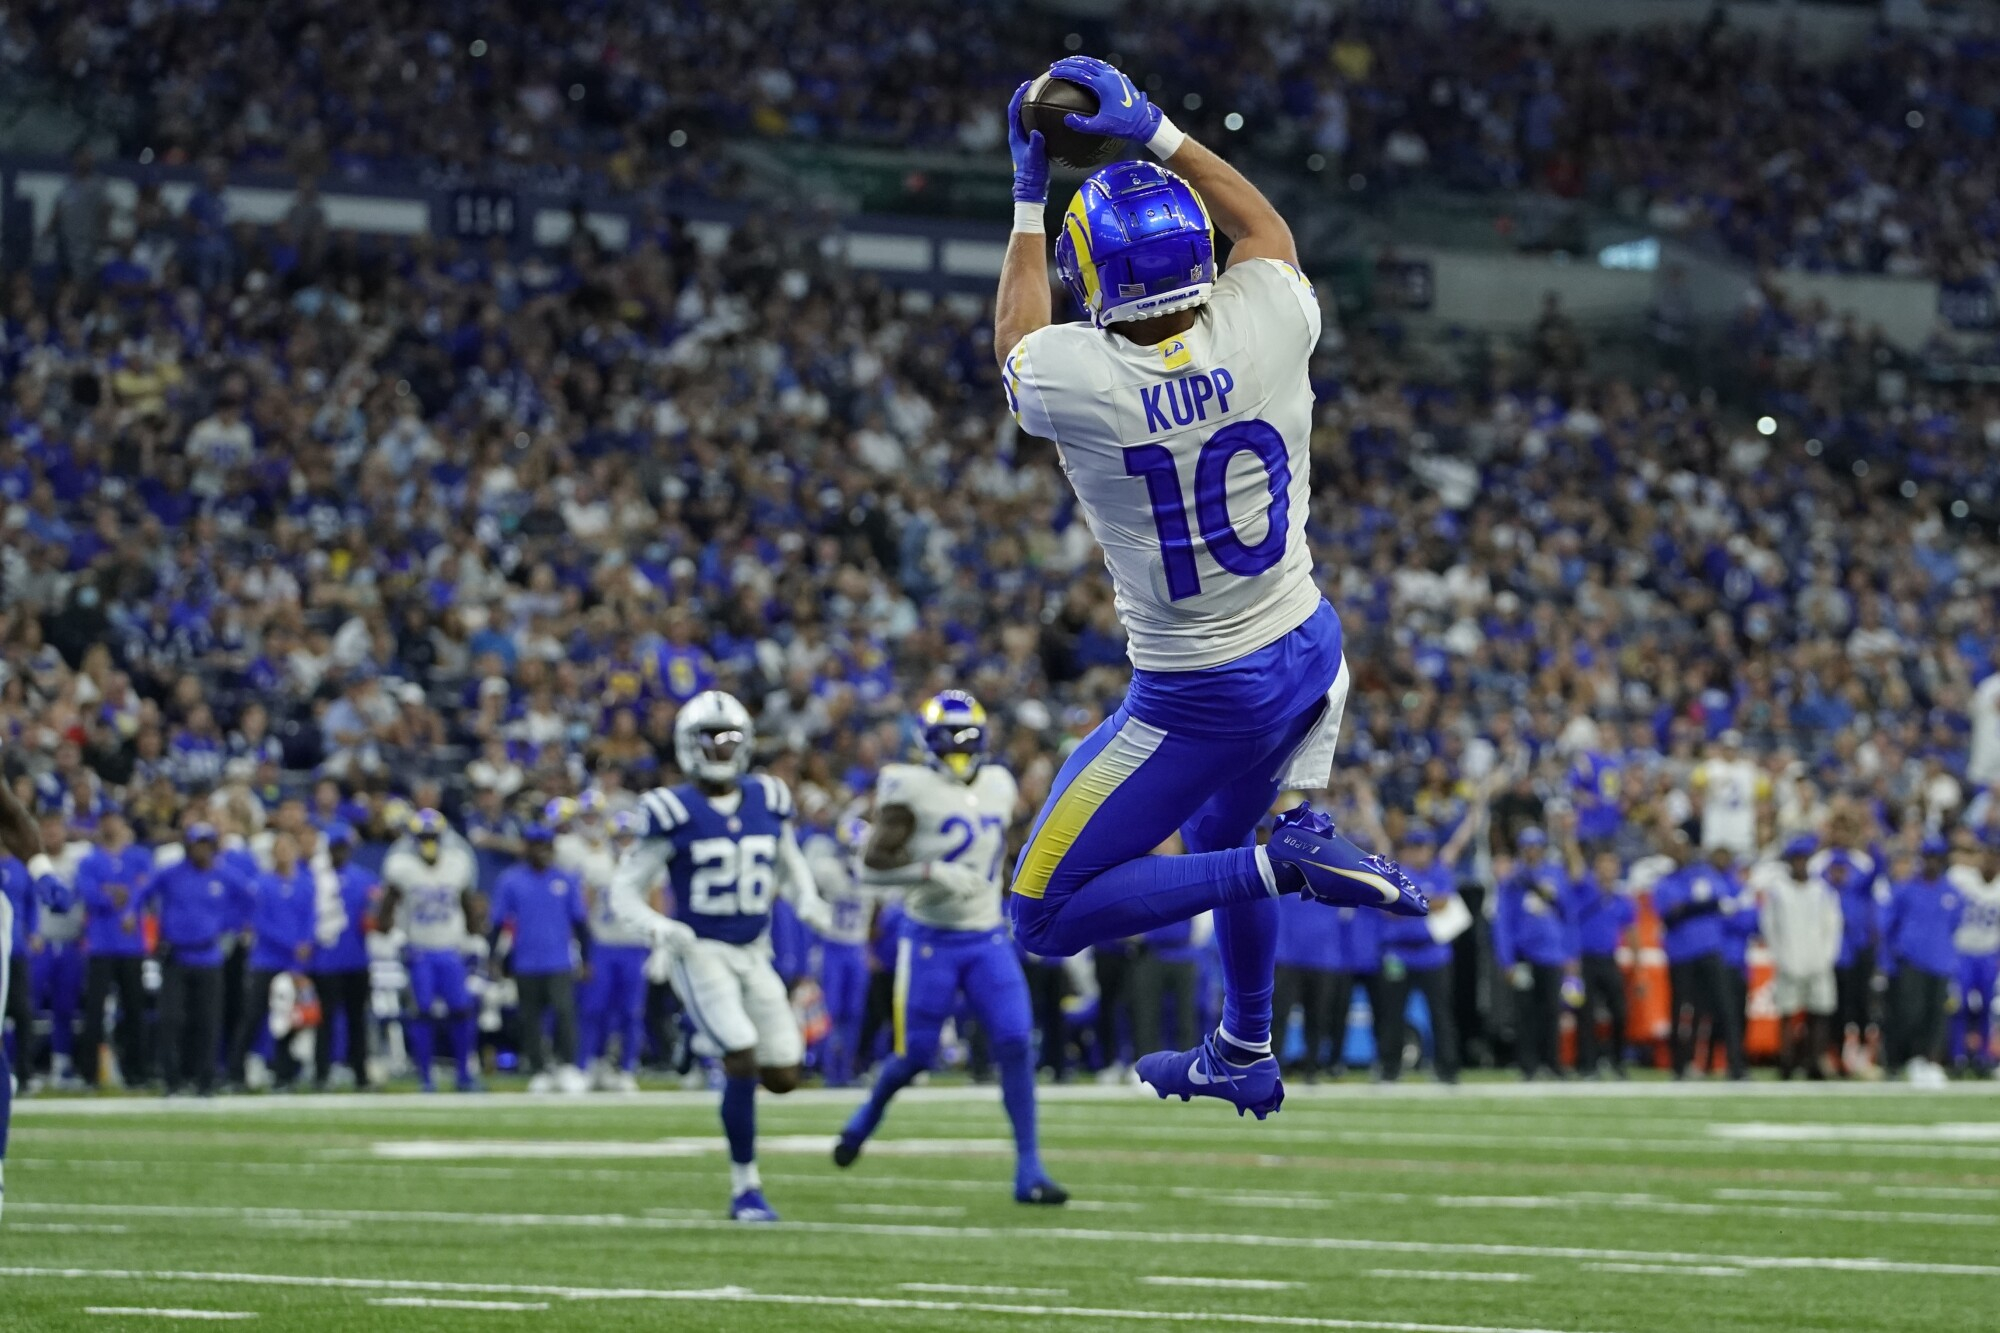 Cooper Kupp has another big day in Rams' win over Colts - Los Angeles Times